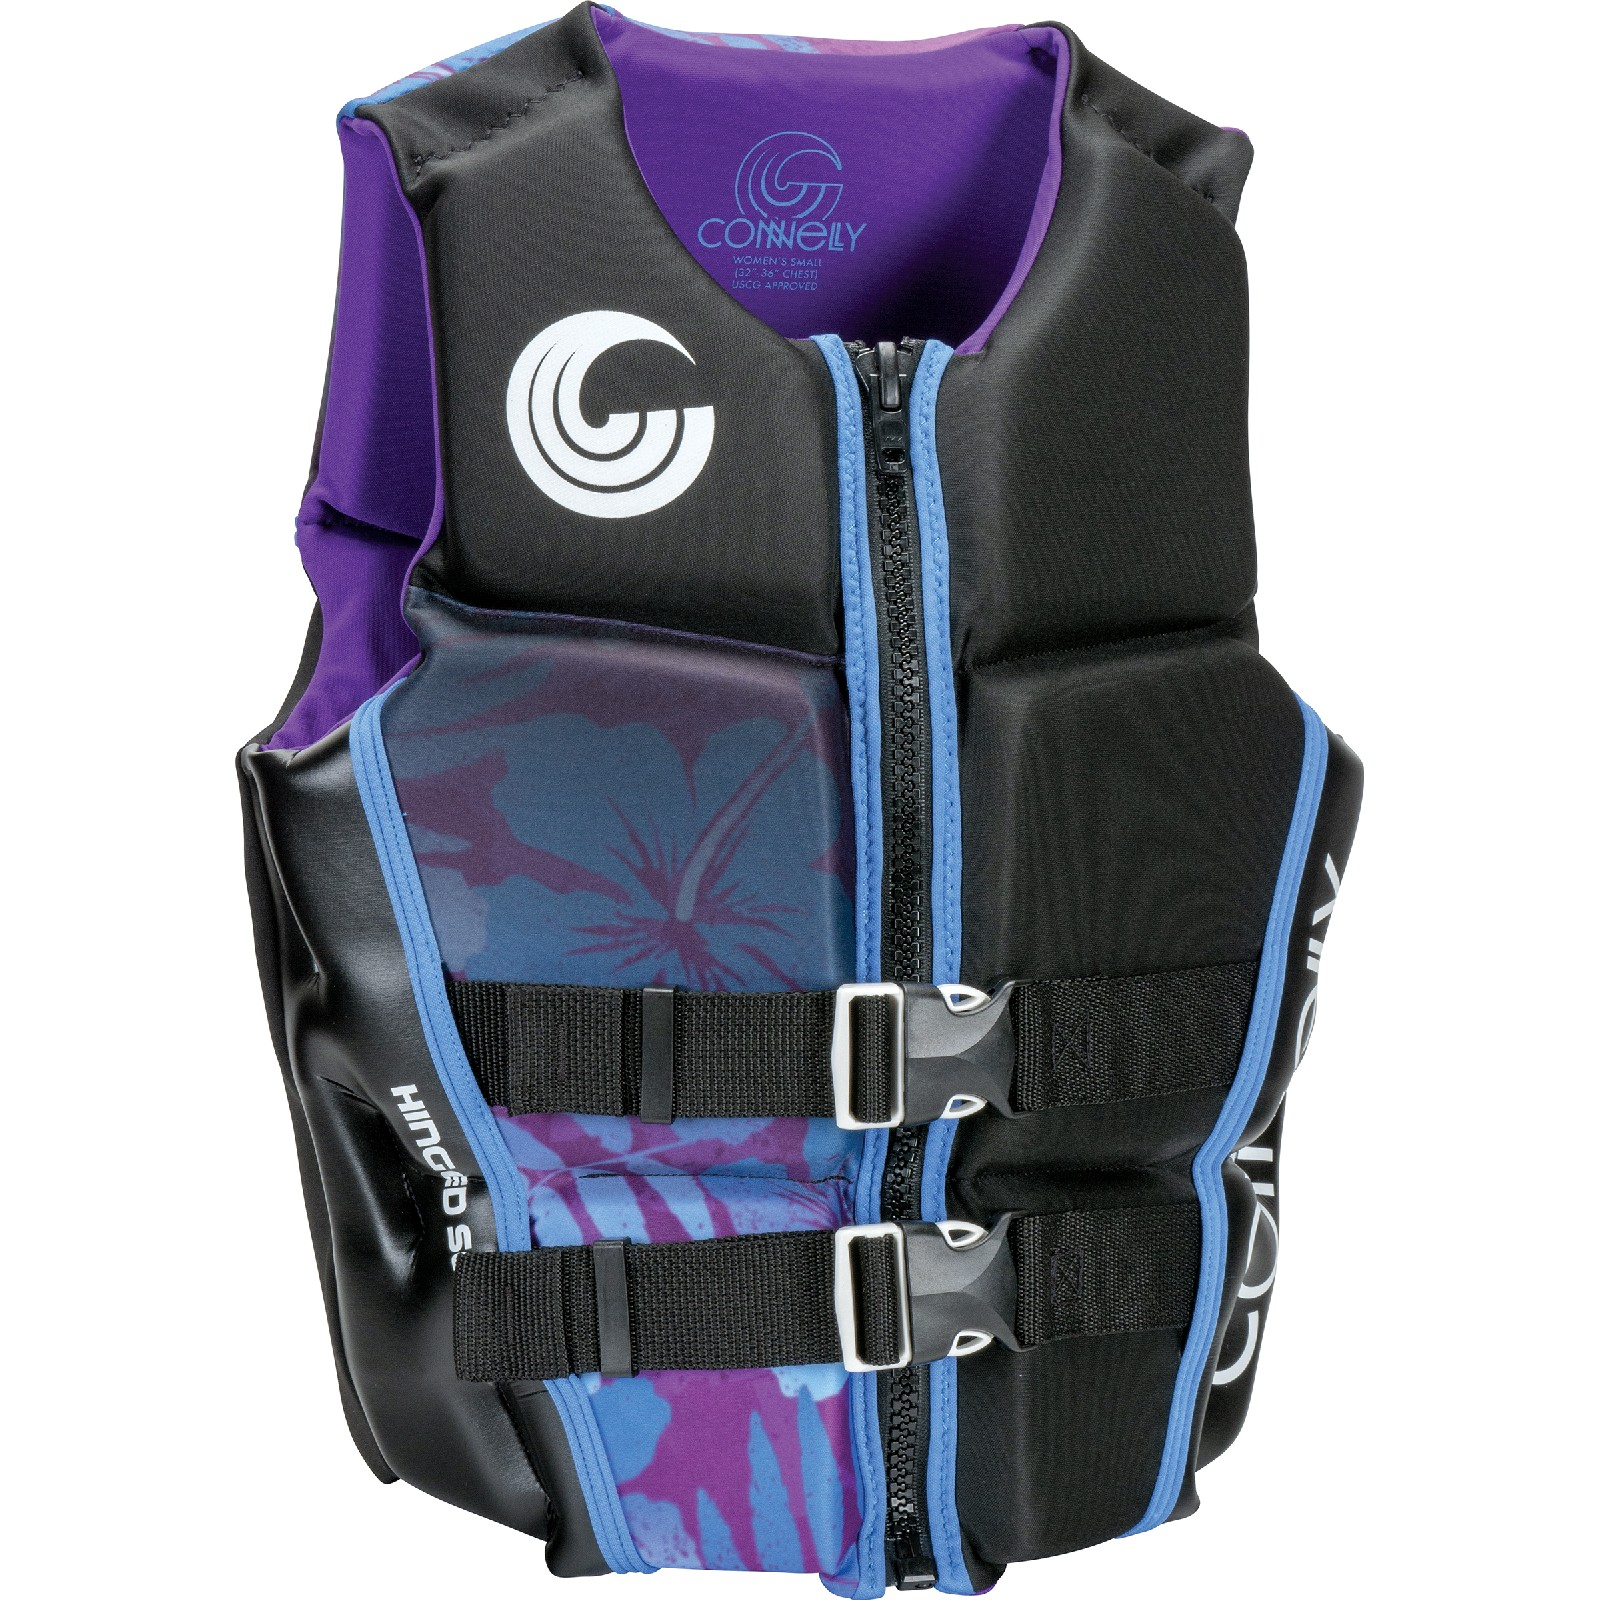 LOTUS NEO LIFE VEST CONNELLY 2019